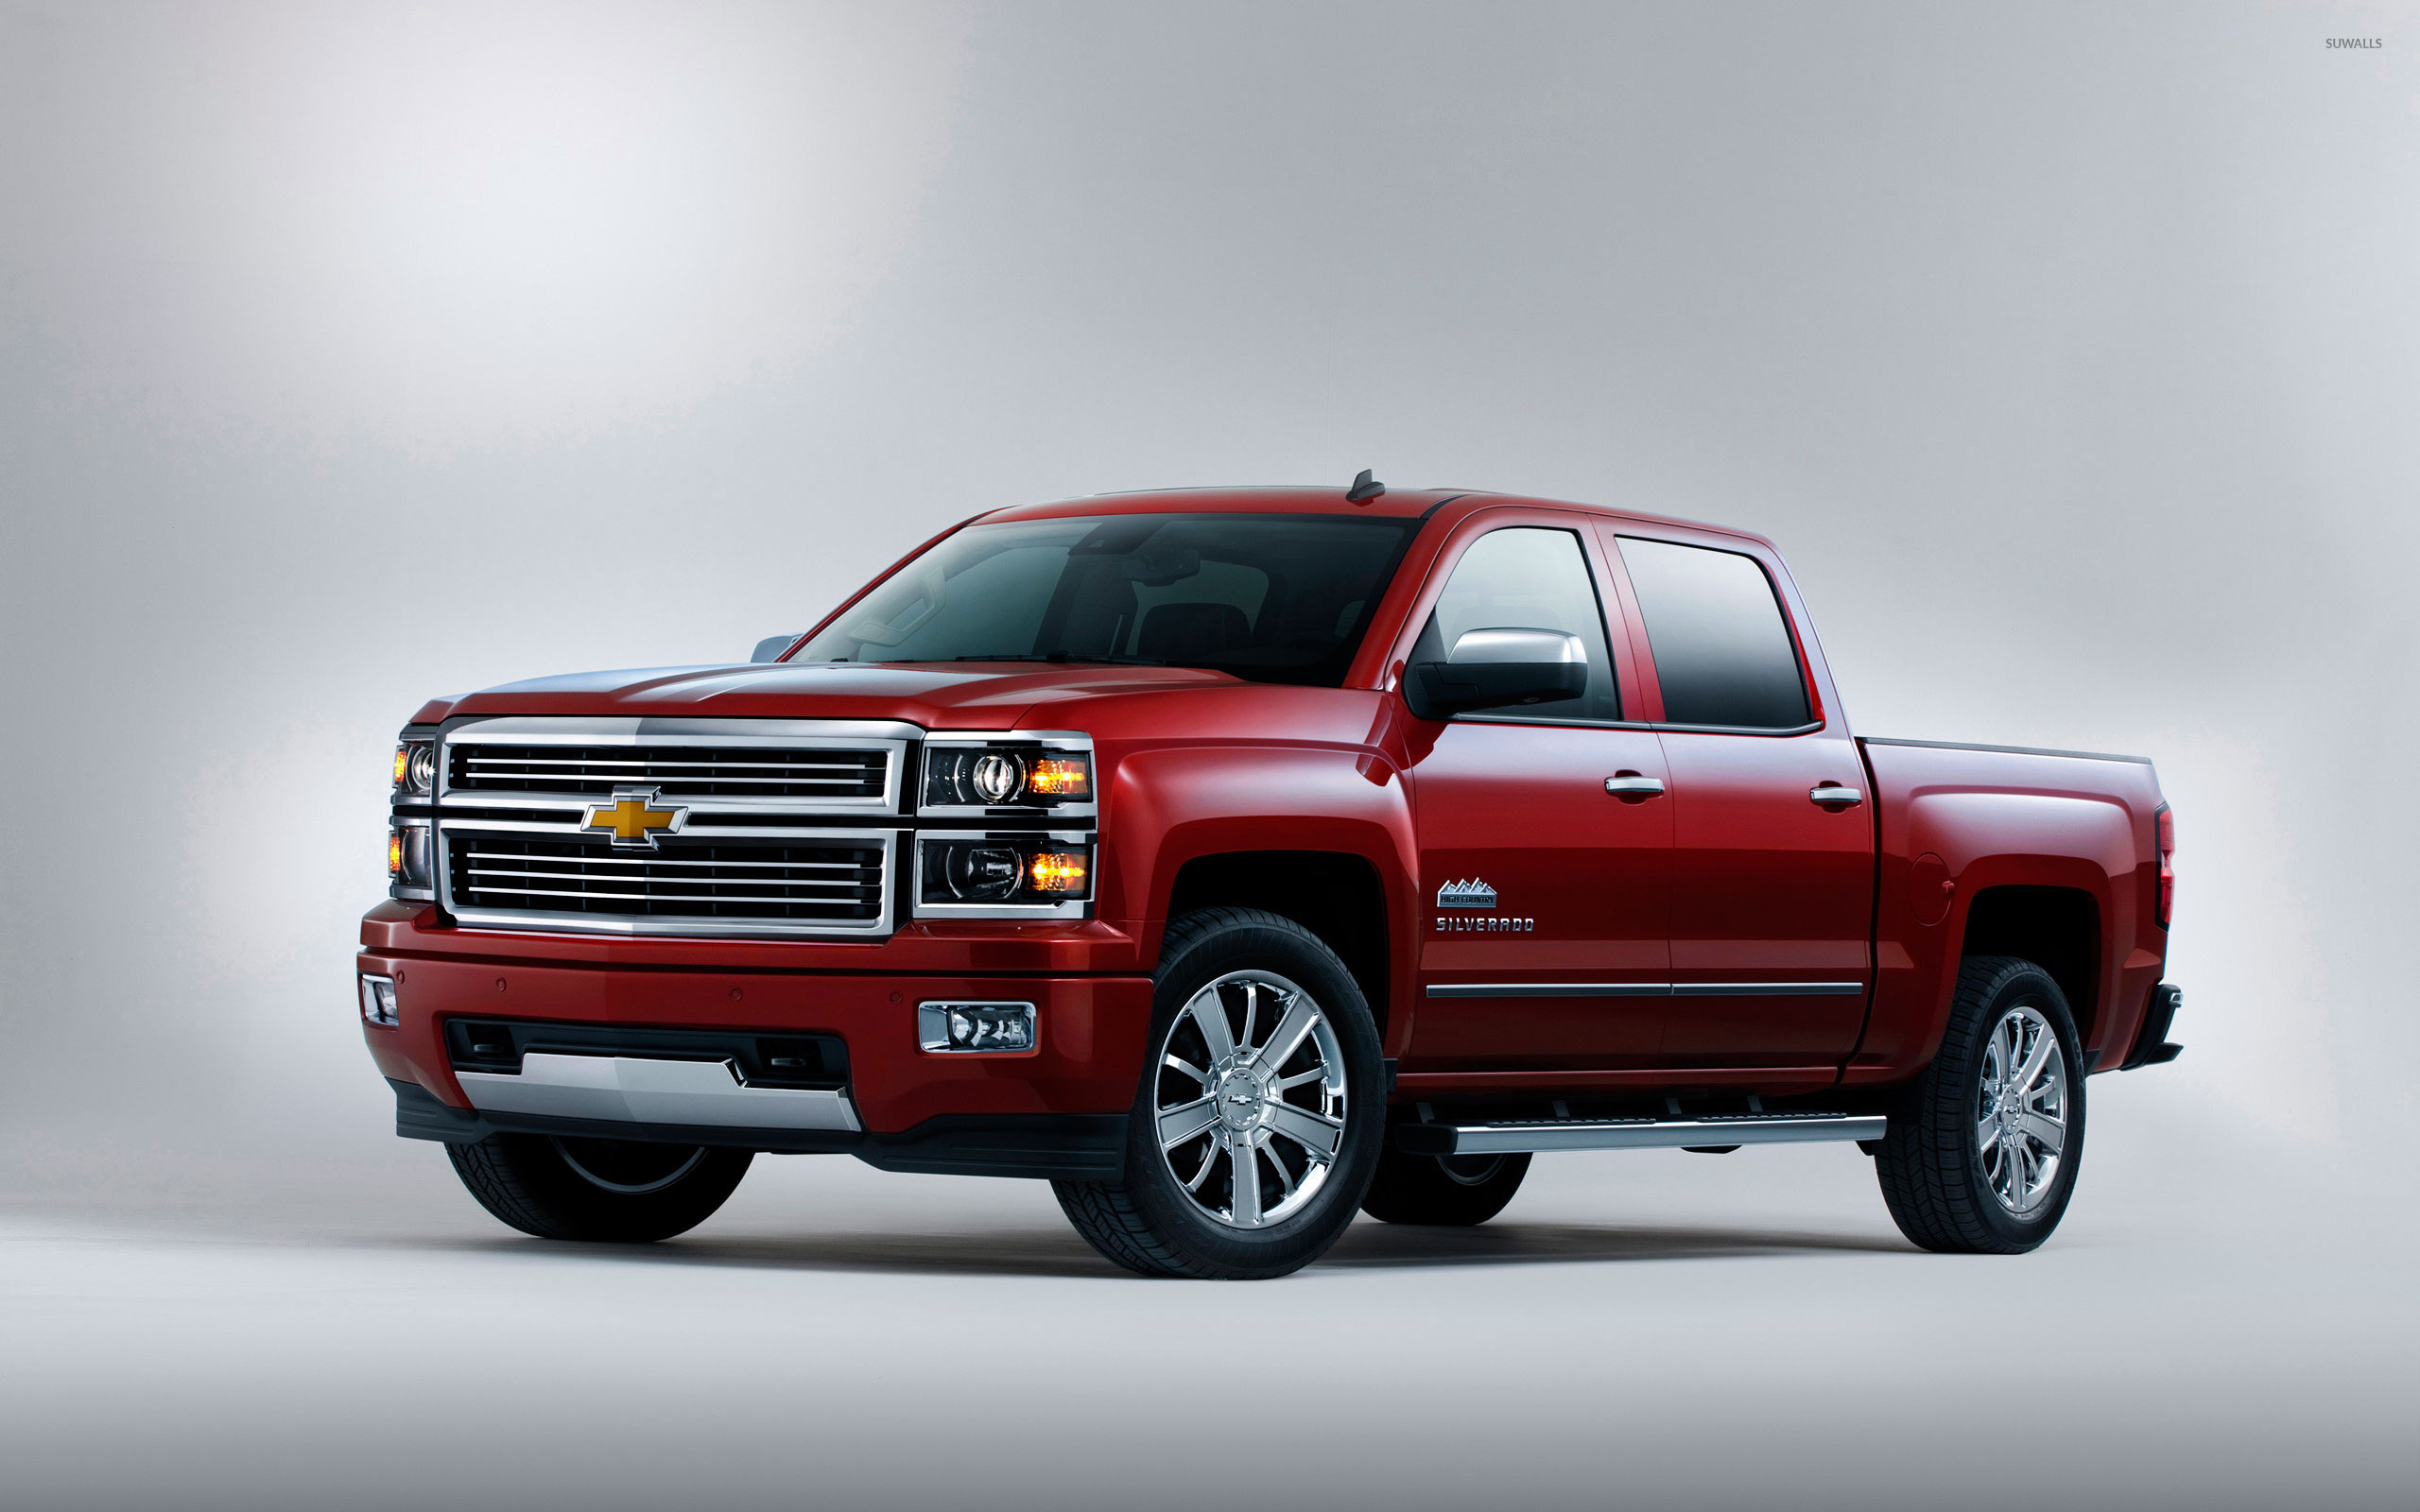 2014 Chevy Silverado Wallpapers  WallpaperSafari